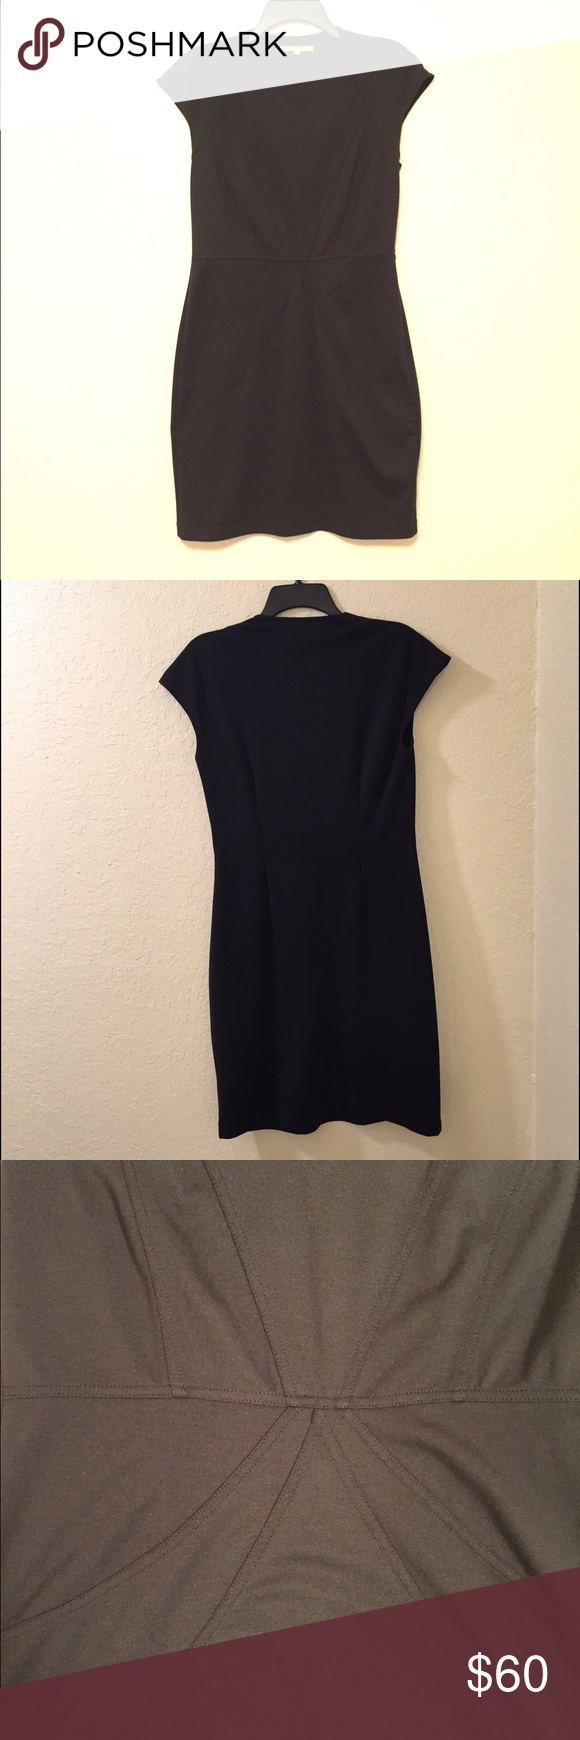 Gianni Bini BLACK Dress Worn and washed once, this dress is in excellent condition. The flattering design hugs your natural curves while still appropriate for a professional environment. There is a small zipper on the left to ensure a comfortable fit. 72% Polyester, 23% Rayon, and 5% Spandex. Gianni Bini Dresses